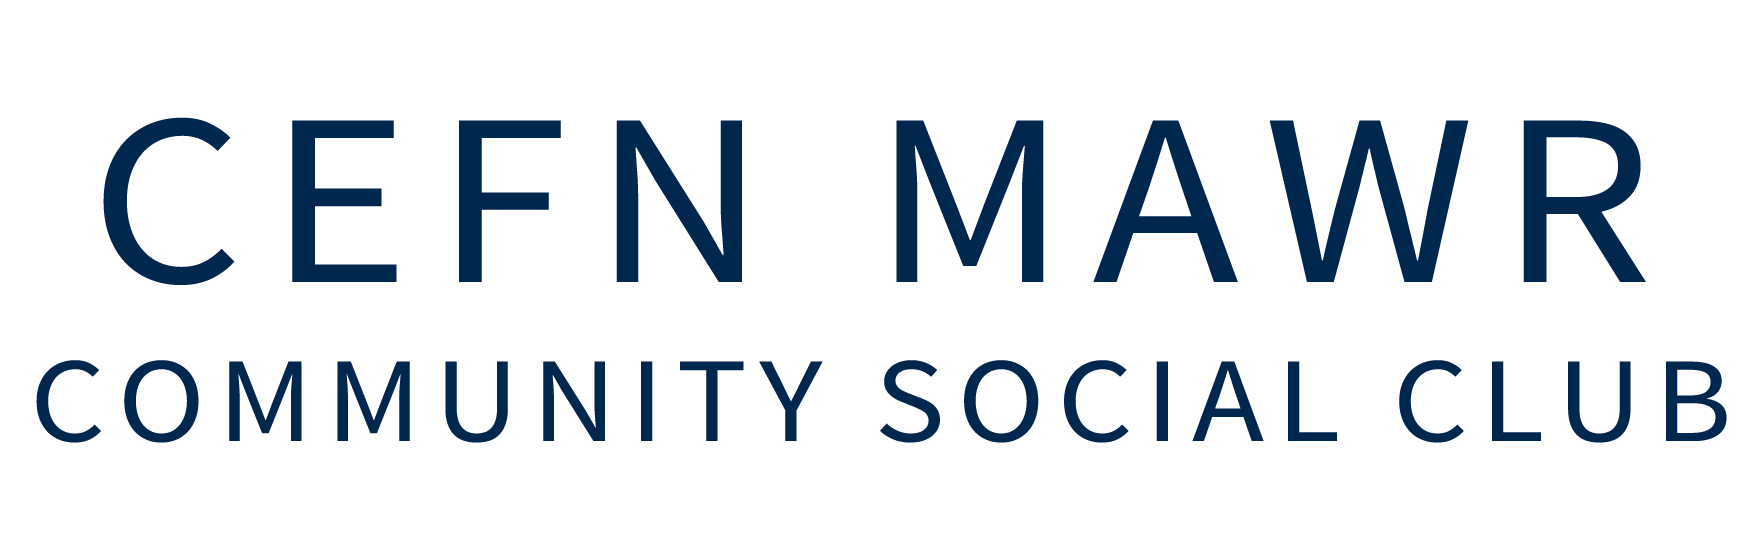 Cefn Mawr Community Social Club